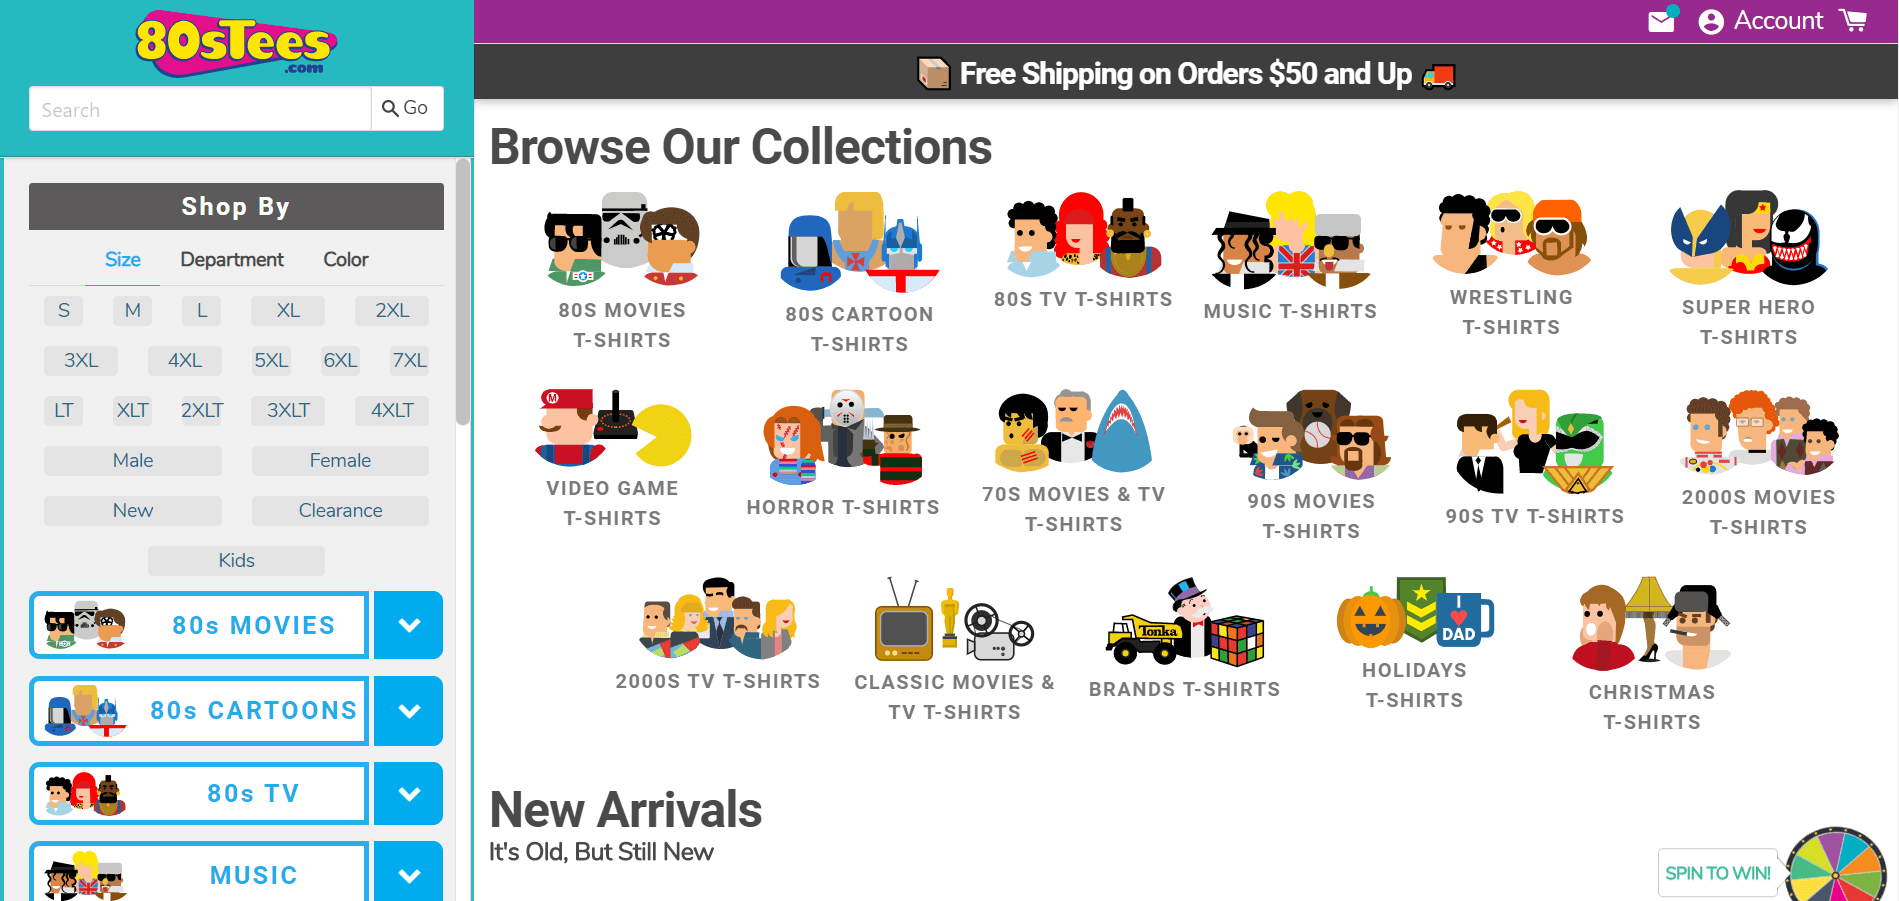 This screenshot from 80s Tees shows fun icons that shoppers can use to filter their searches for tee shirts inspired by the 1980s.